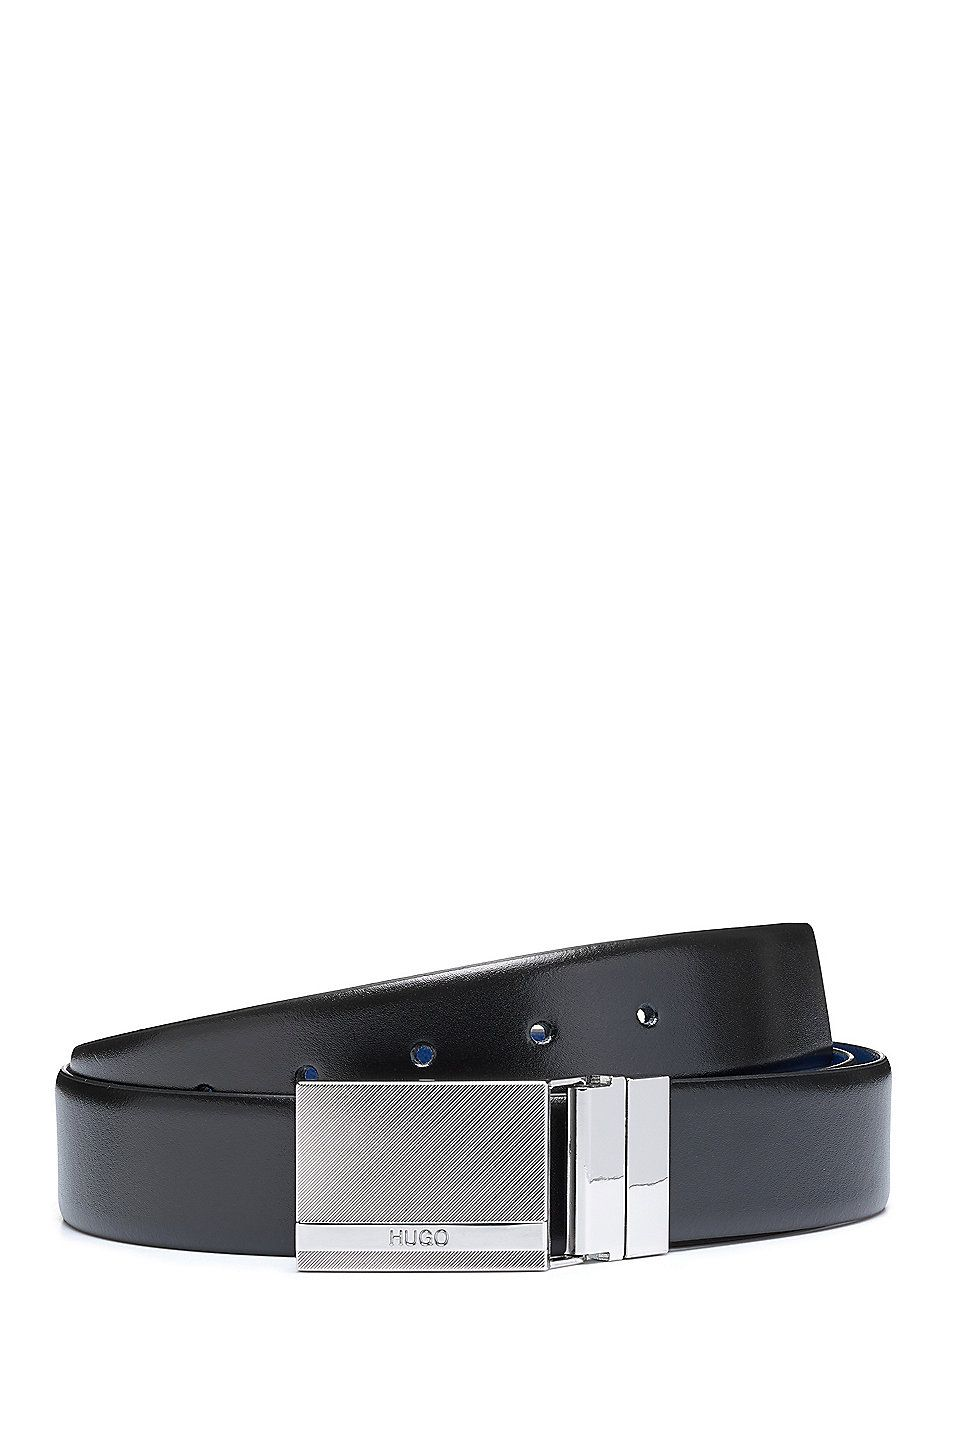 1792e9a71e35 HUGO BOSS Gift-boxed double-buckle belt in mixed leathers - Black Business  Belts